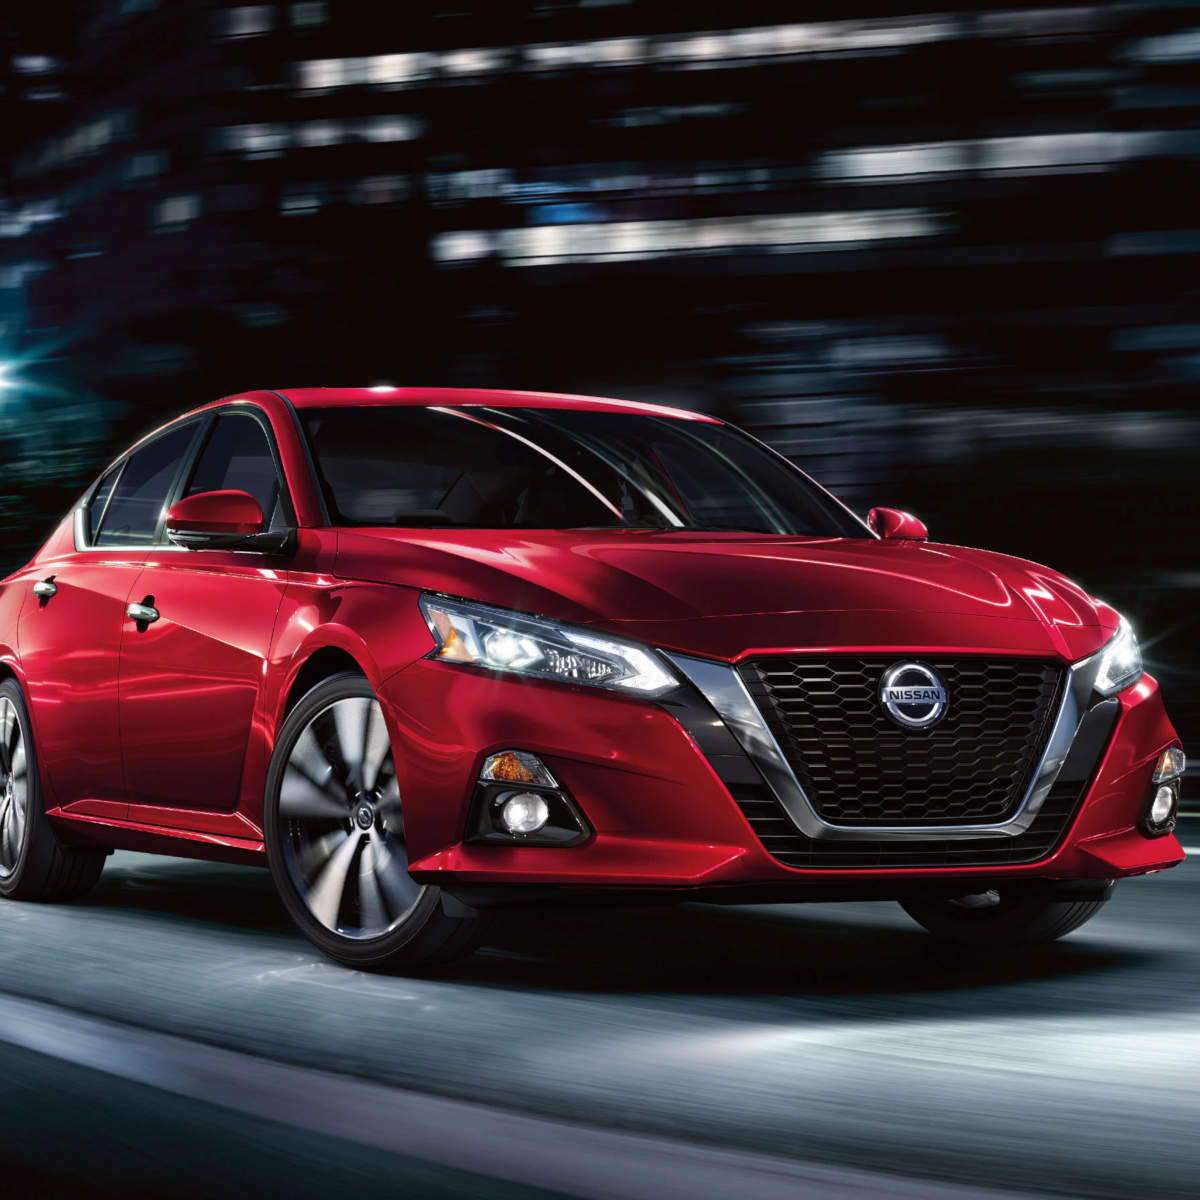 2020 Nissan Altima at Hawkinson Nissan